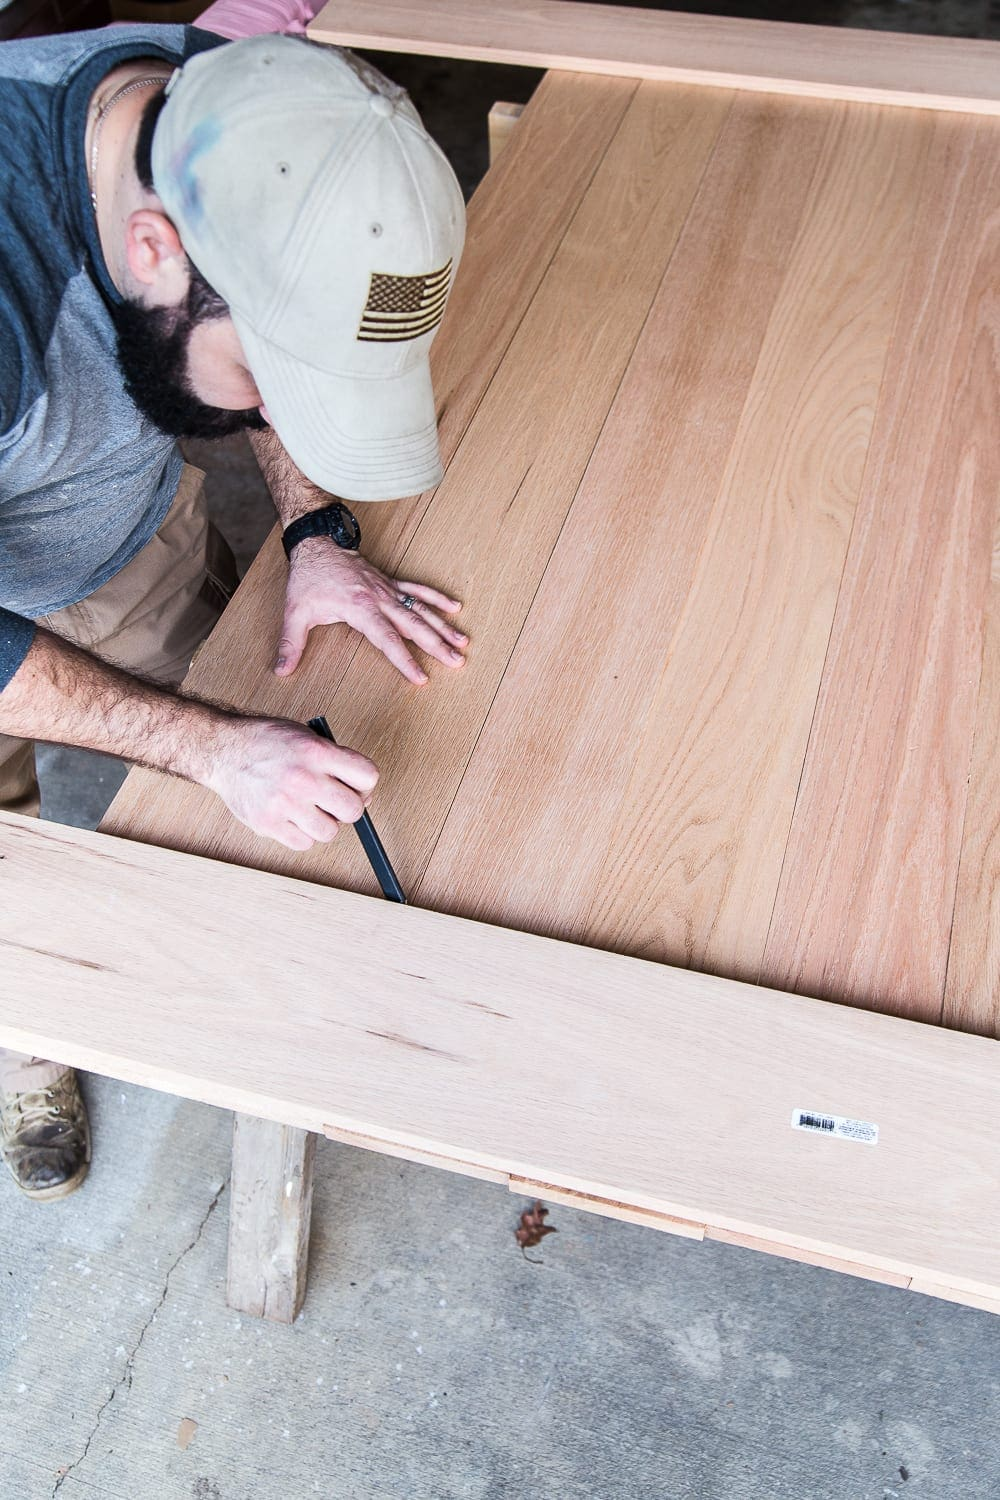 A tutorial for how to build a retrofitted table top to fit over any existing table using Minwax Dark Walnut stain. #build #furniturebuilding #tabletop #diningtable #diytable #farmhousetable #diyfurniture #woodworking #furnituremakeover #tablemakeover #minwax #woodstain #walnut